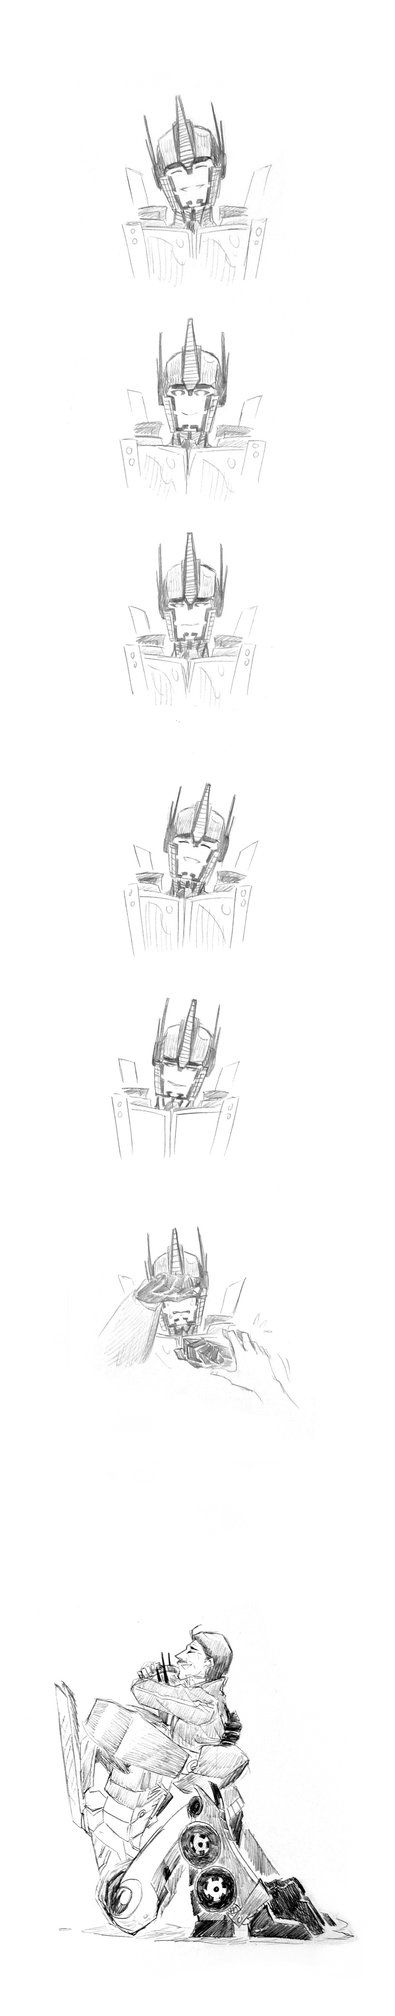 Let it out Optimus it ok papa peter here